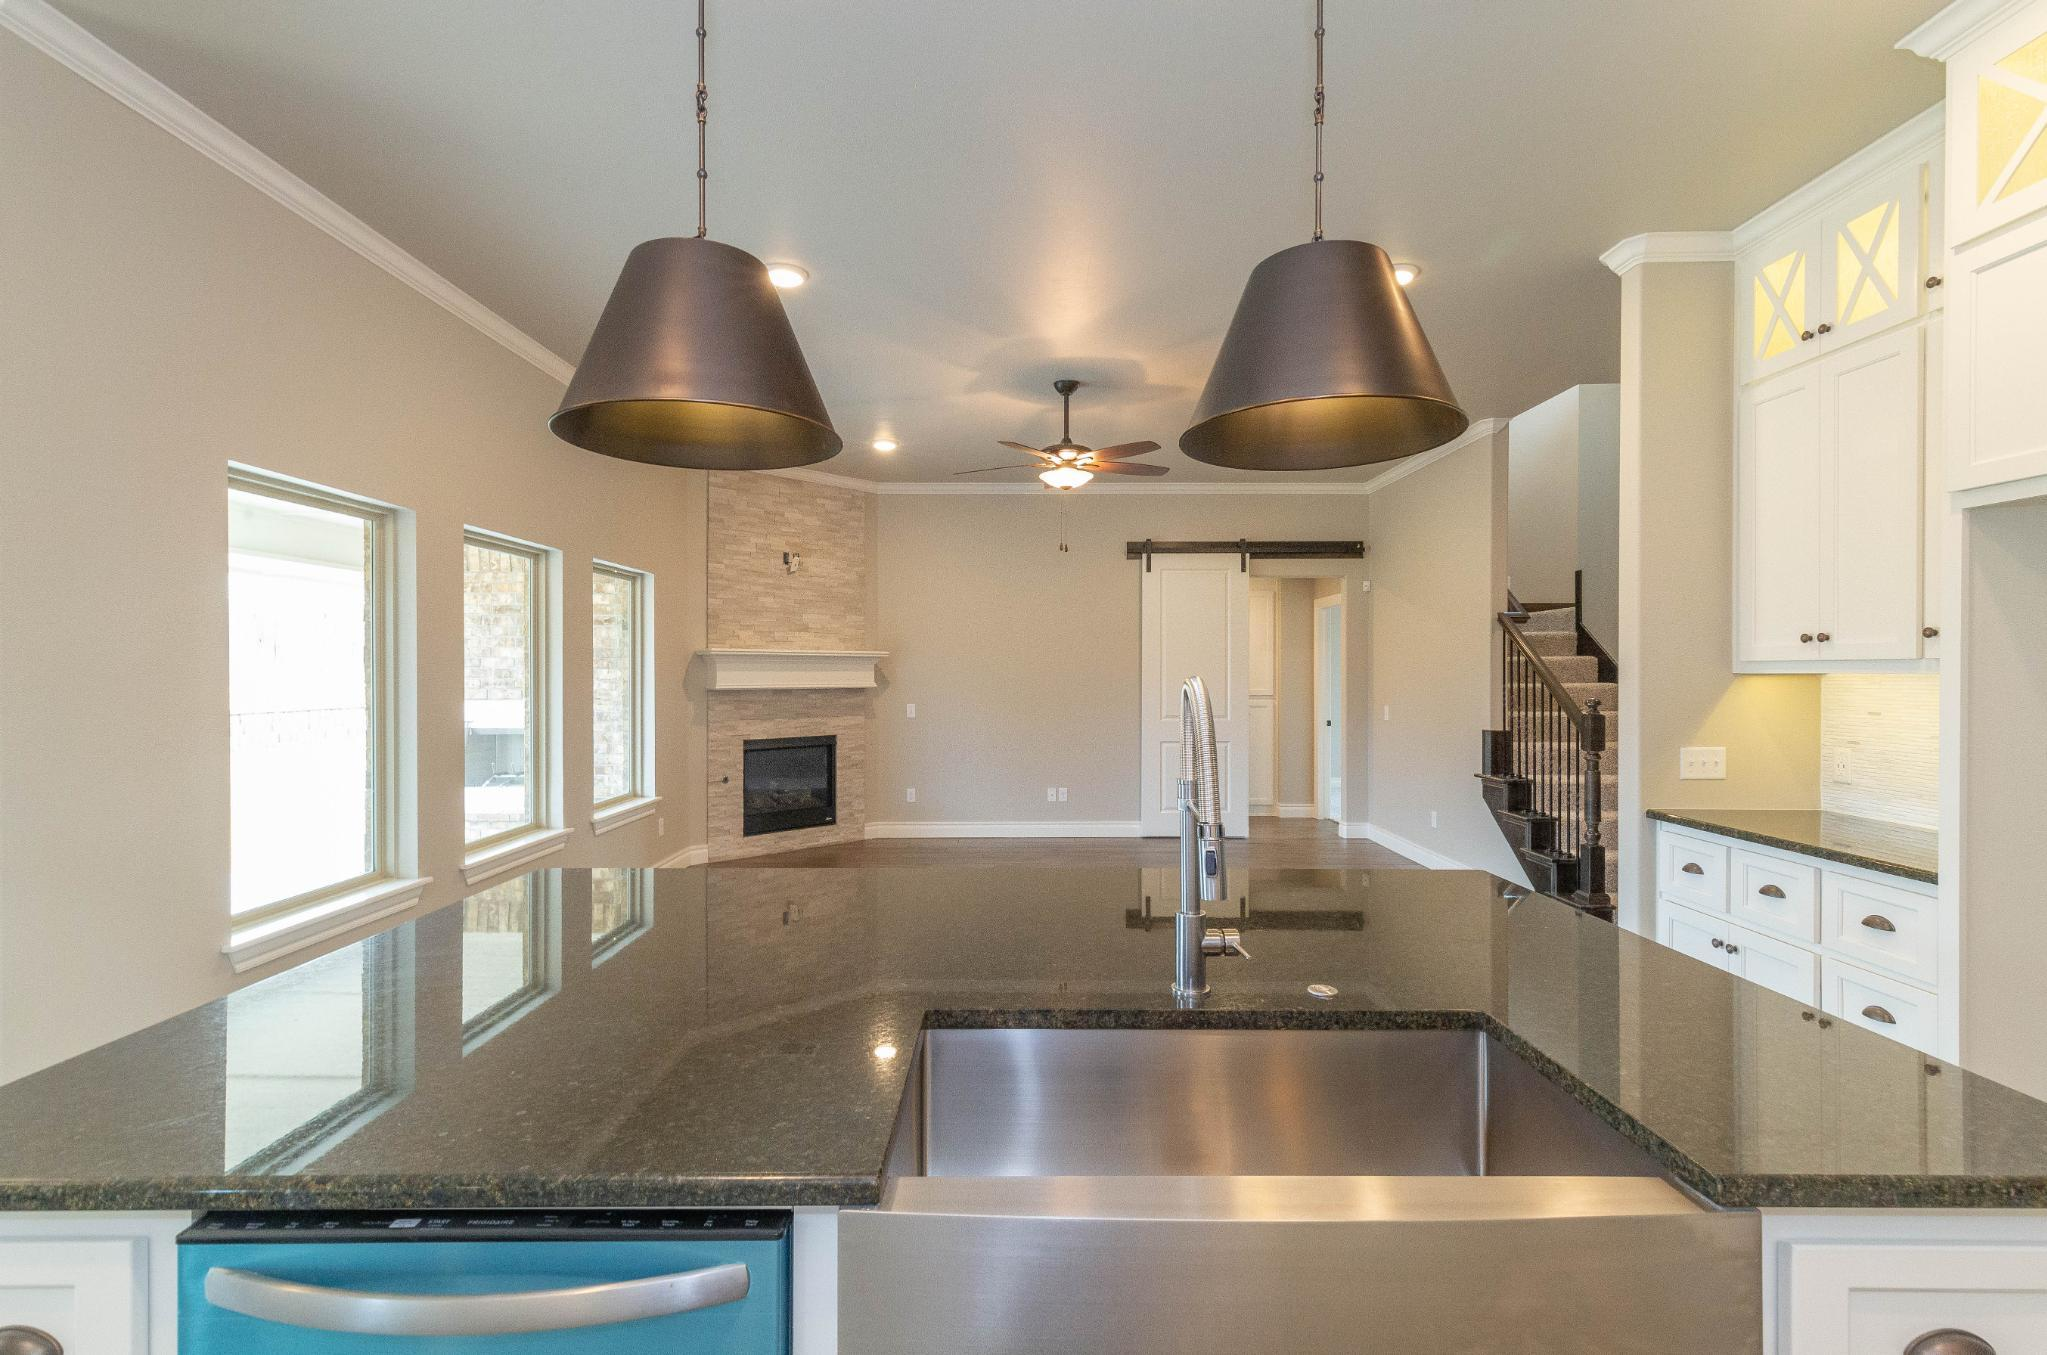 Kitchen featured in the Hazel Bonus Room - 5 Bedroom By Homes By Taber in Oklahoma City, OK